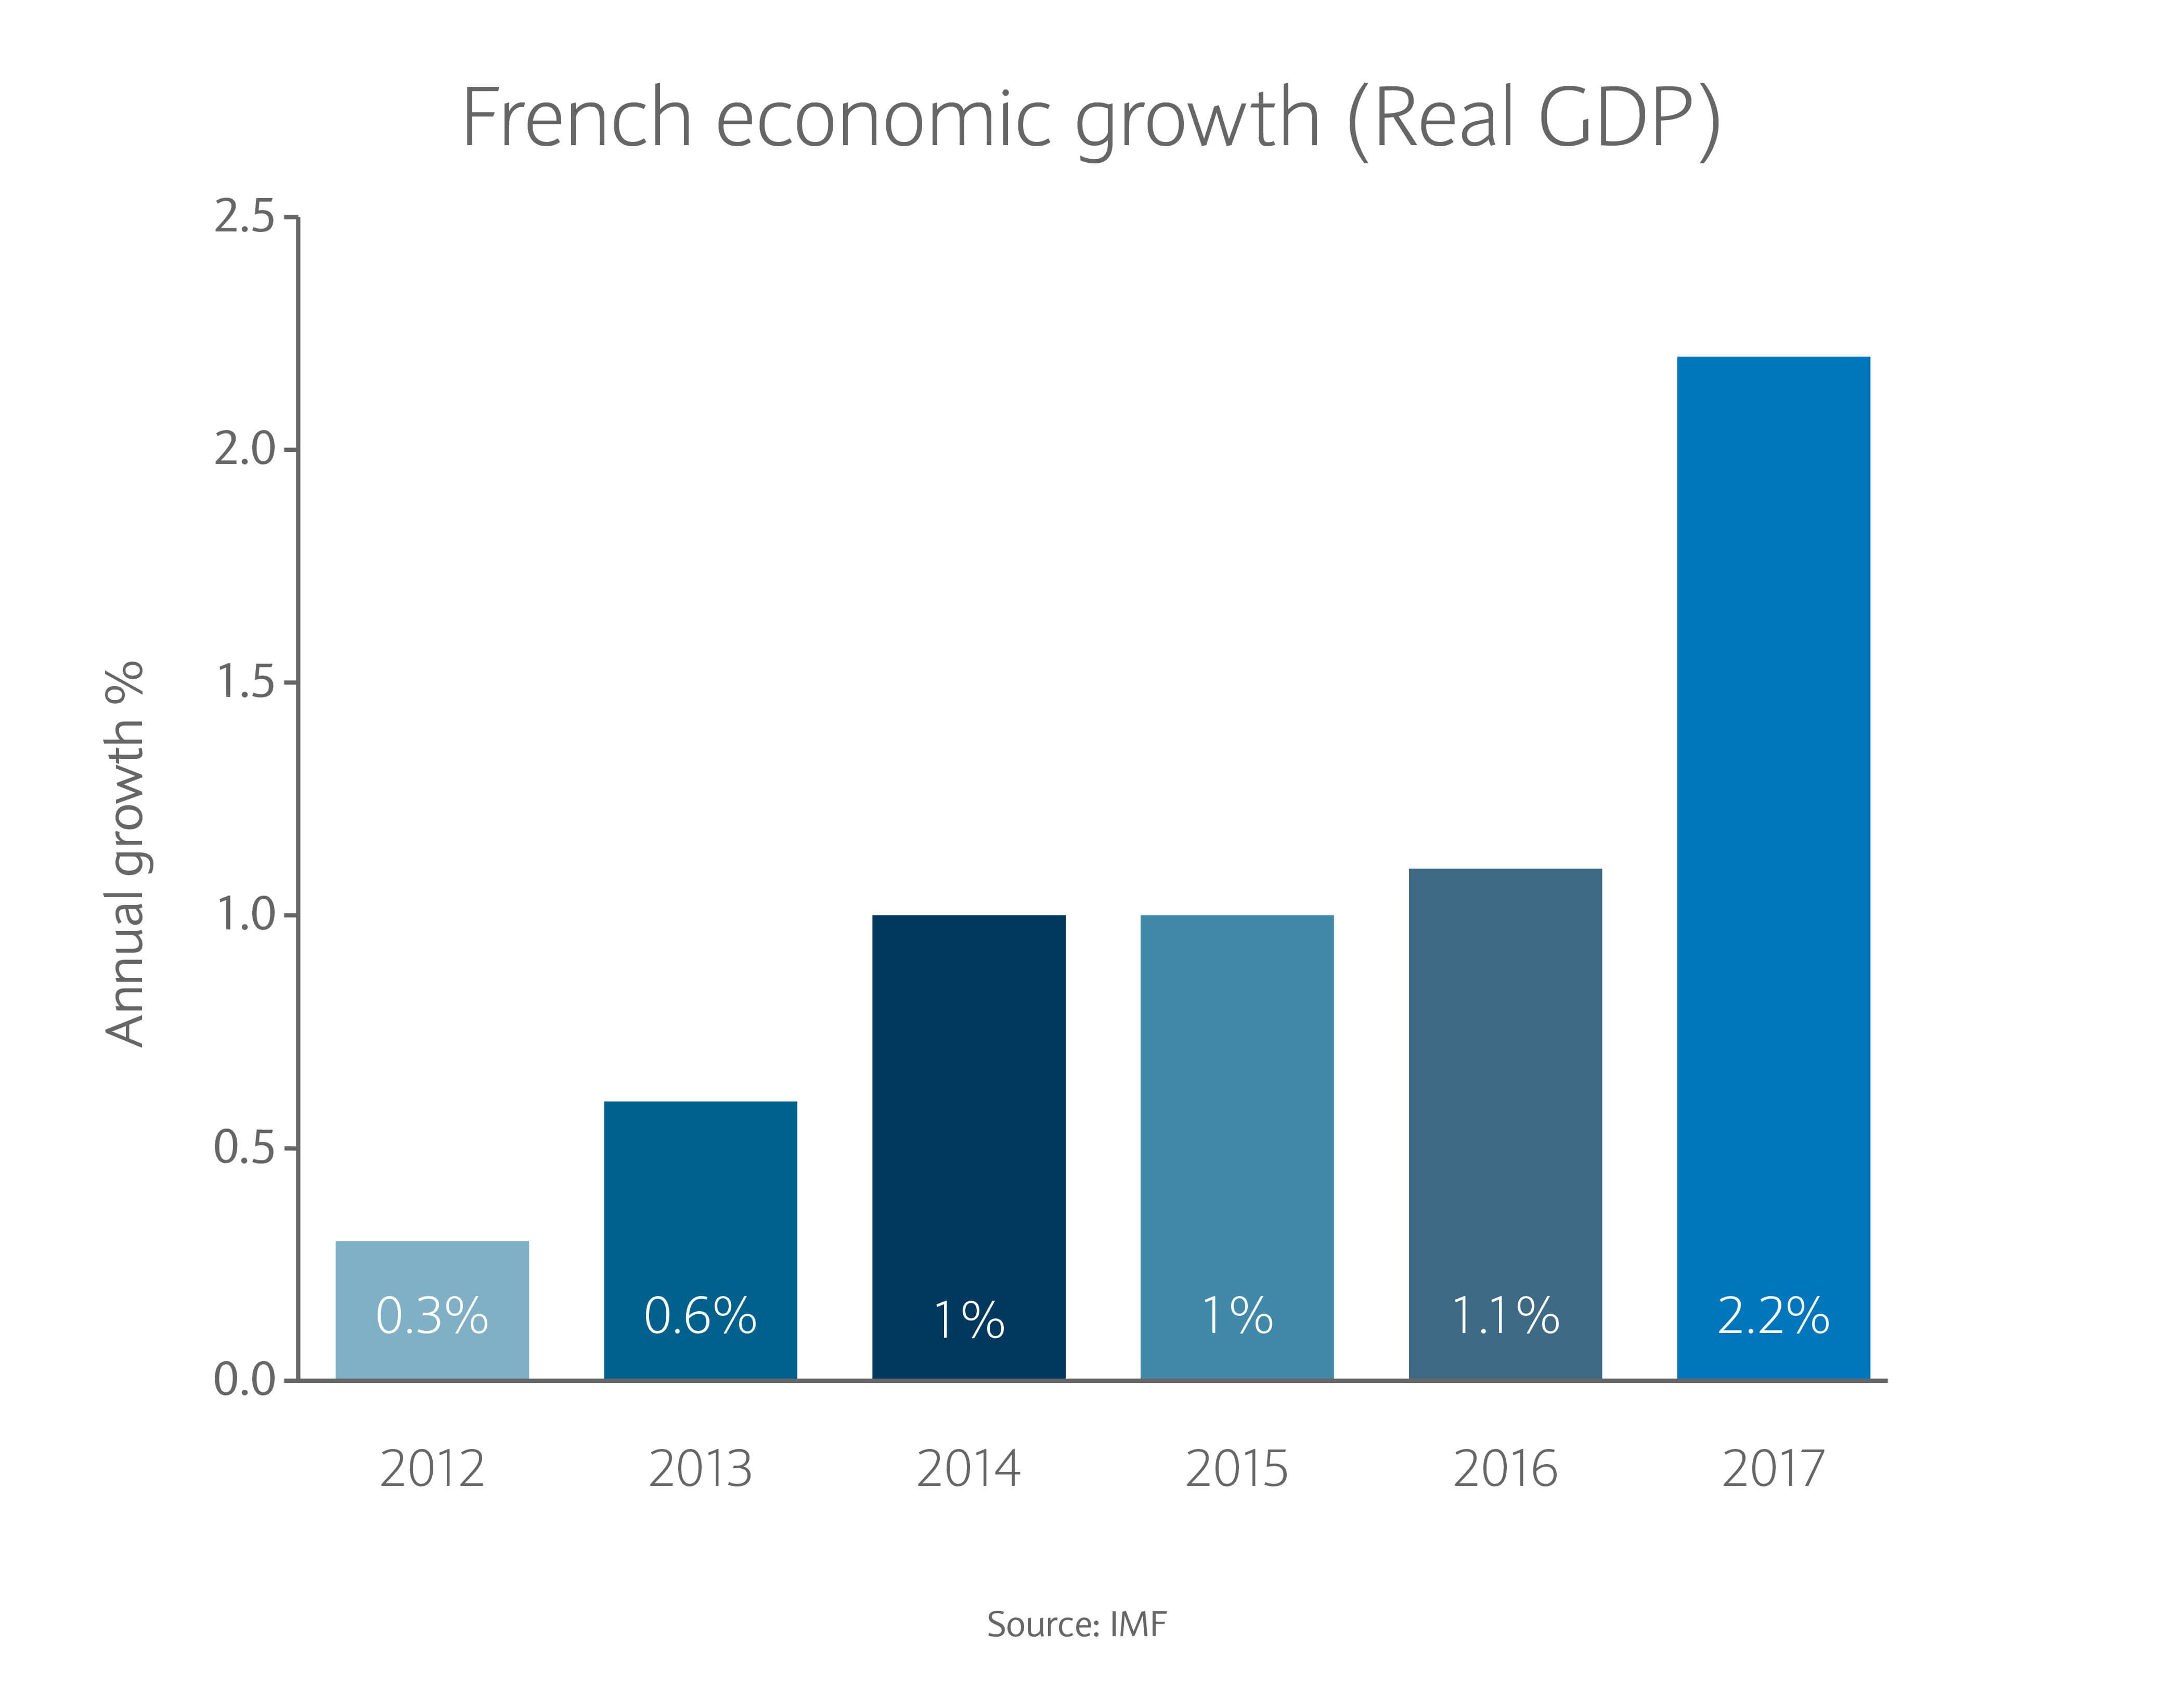 French economic growth